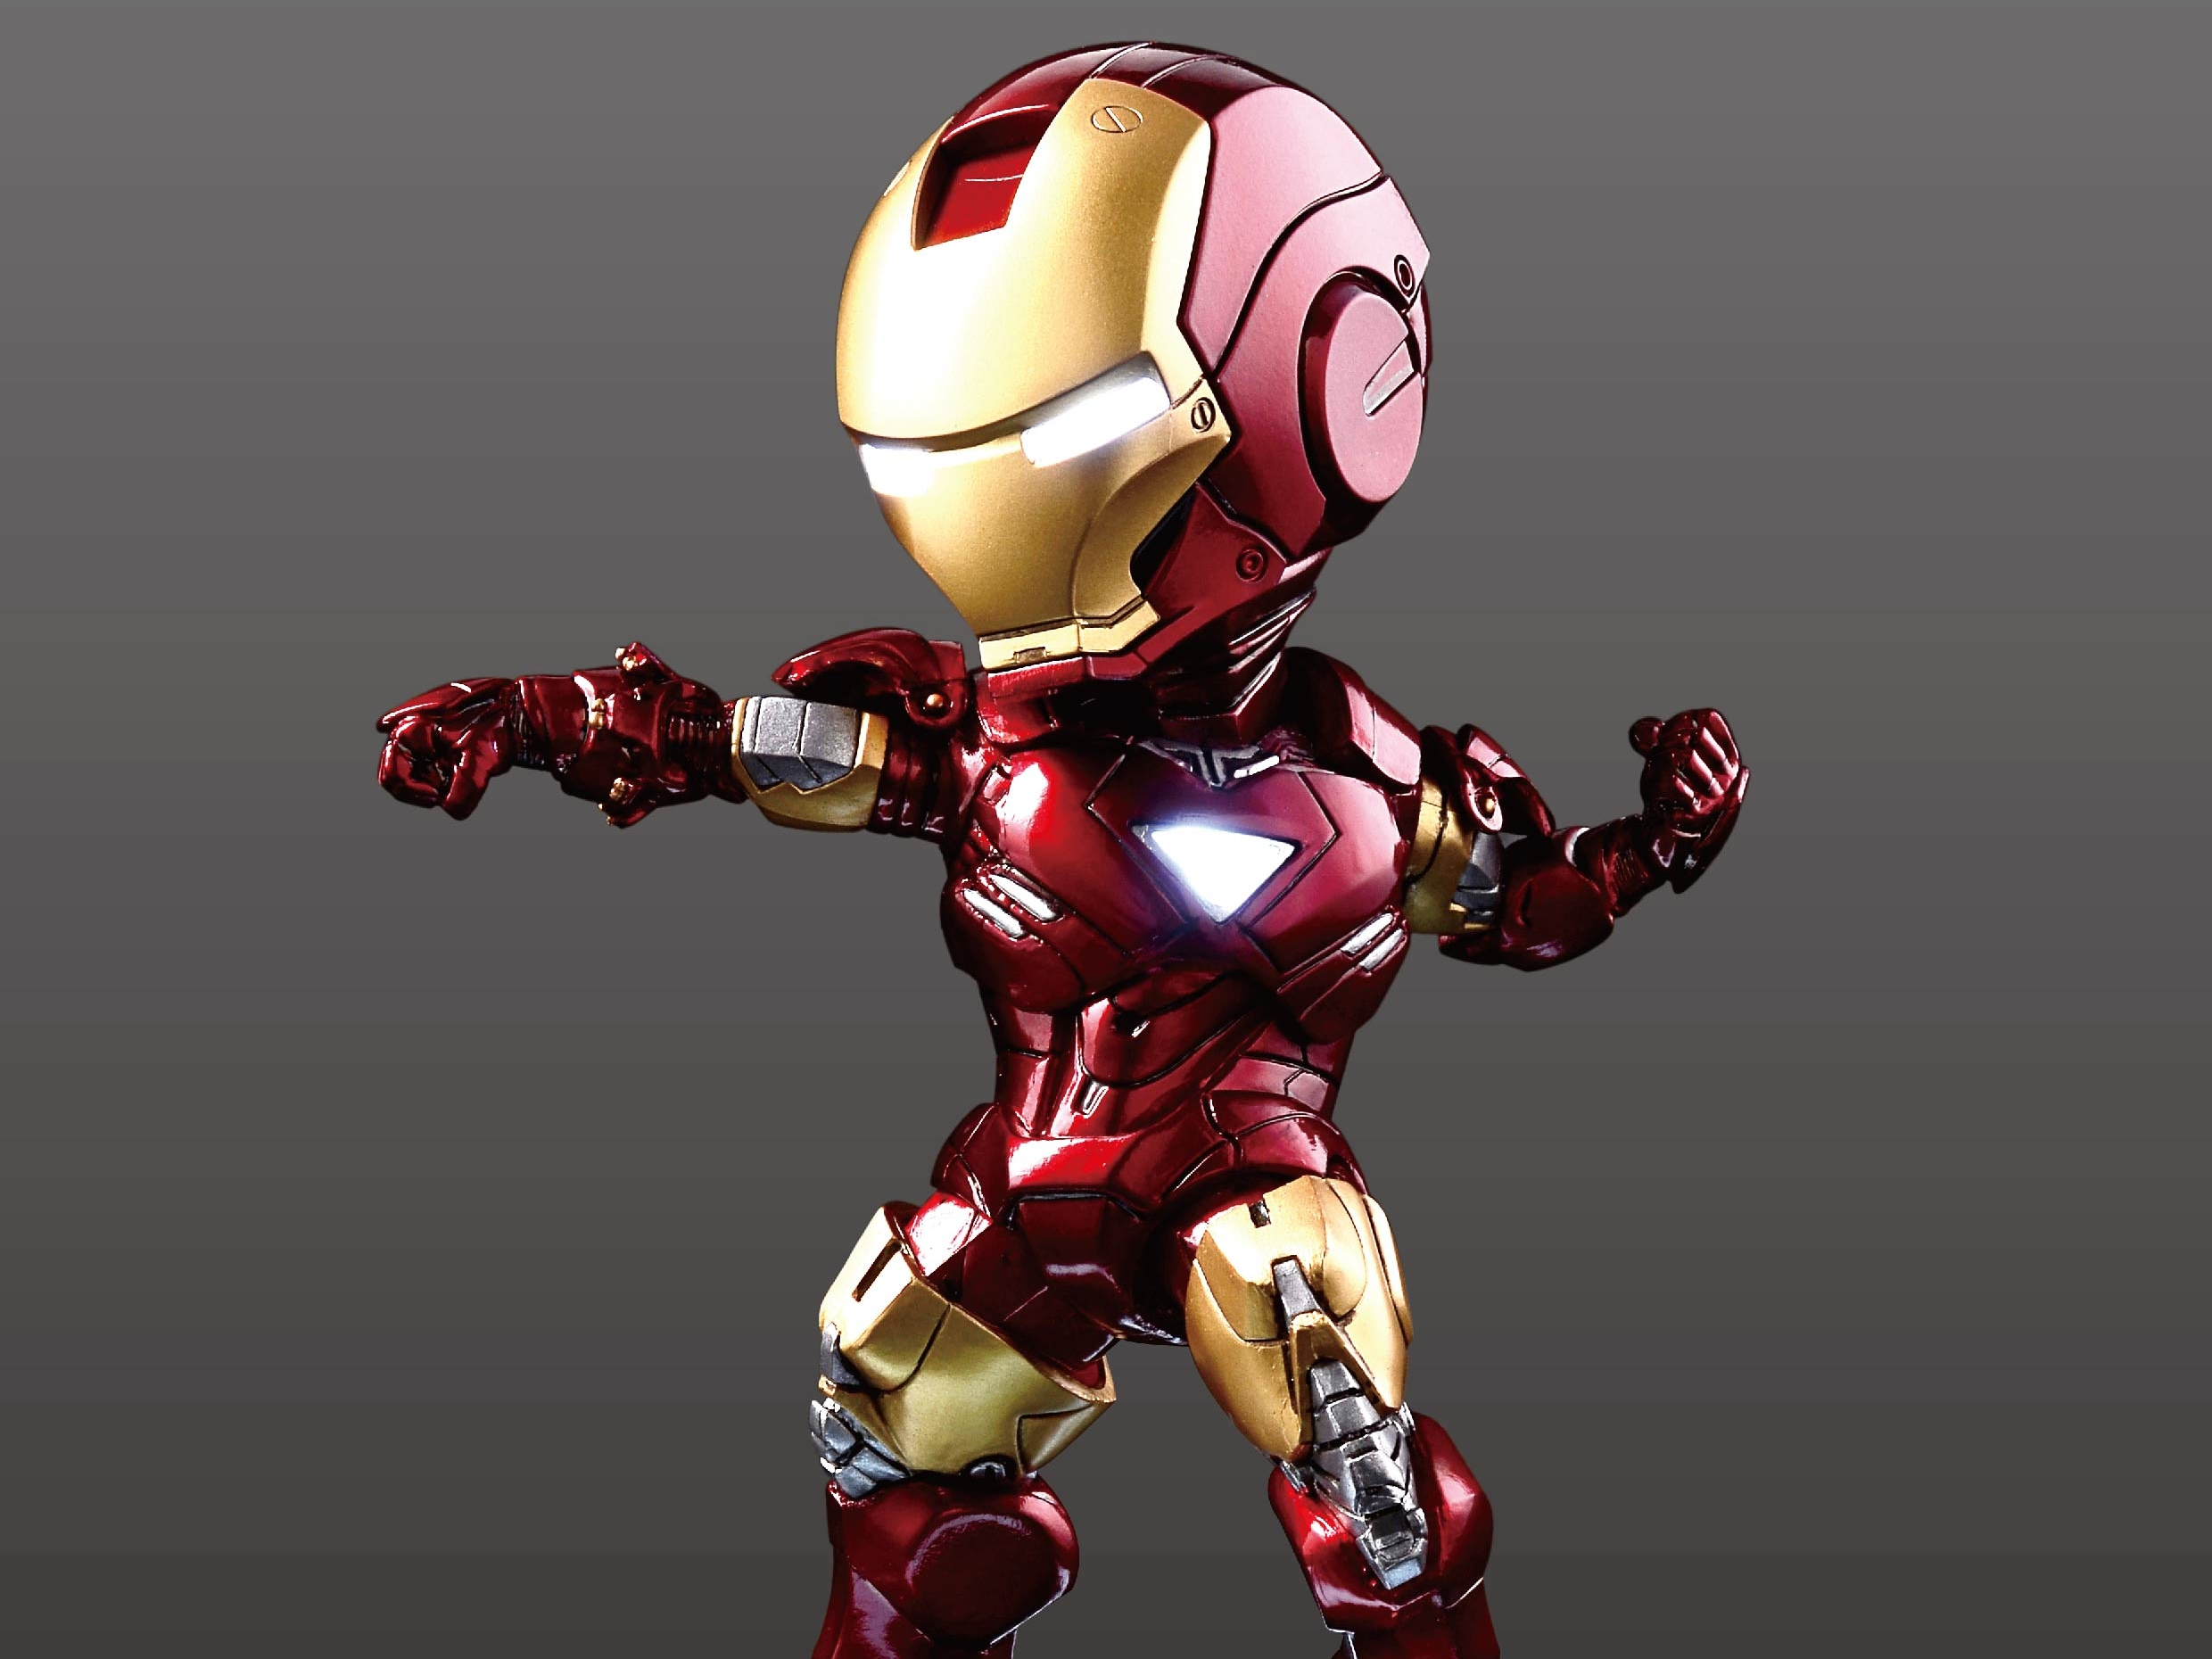 Iron man 2 fond d 39 cran hd arri re plan 2480x1860 id - Iron man 2 telecharger ...